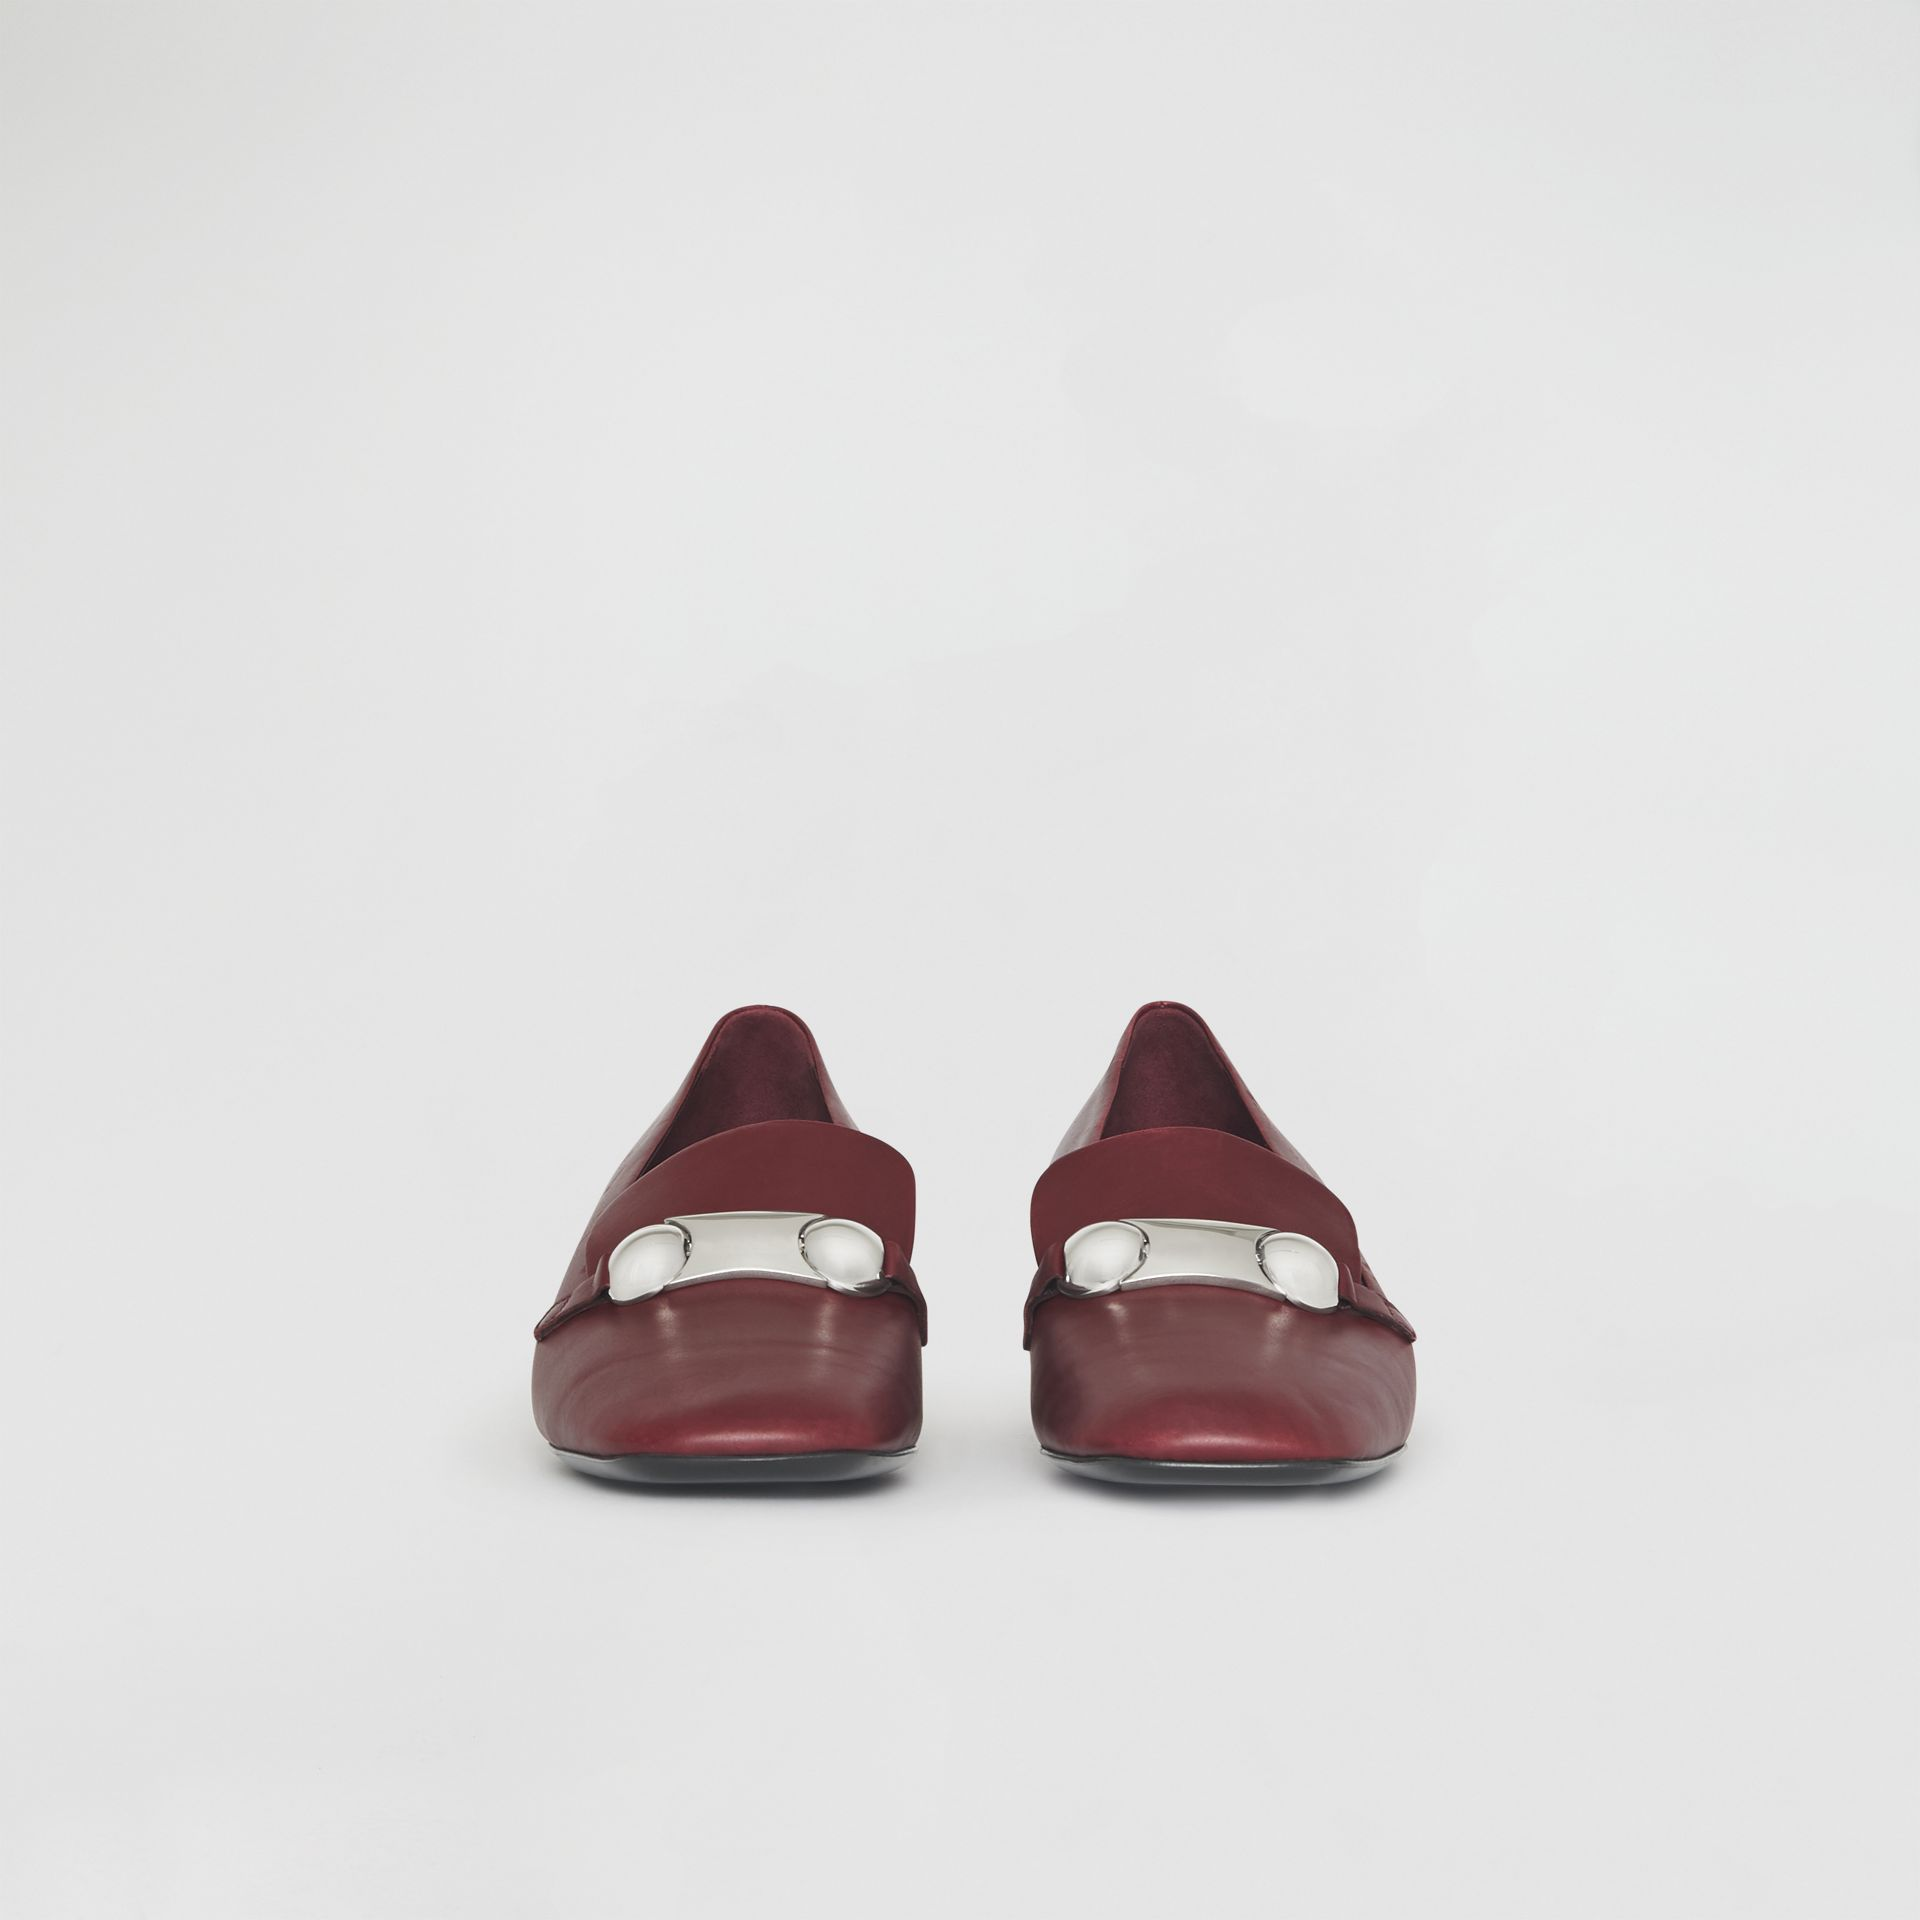 Studded Bar Detail Leather Pumps in Bordeaux - Women | Burberry Hong Kong - gallery image 2